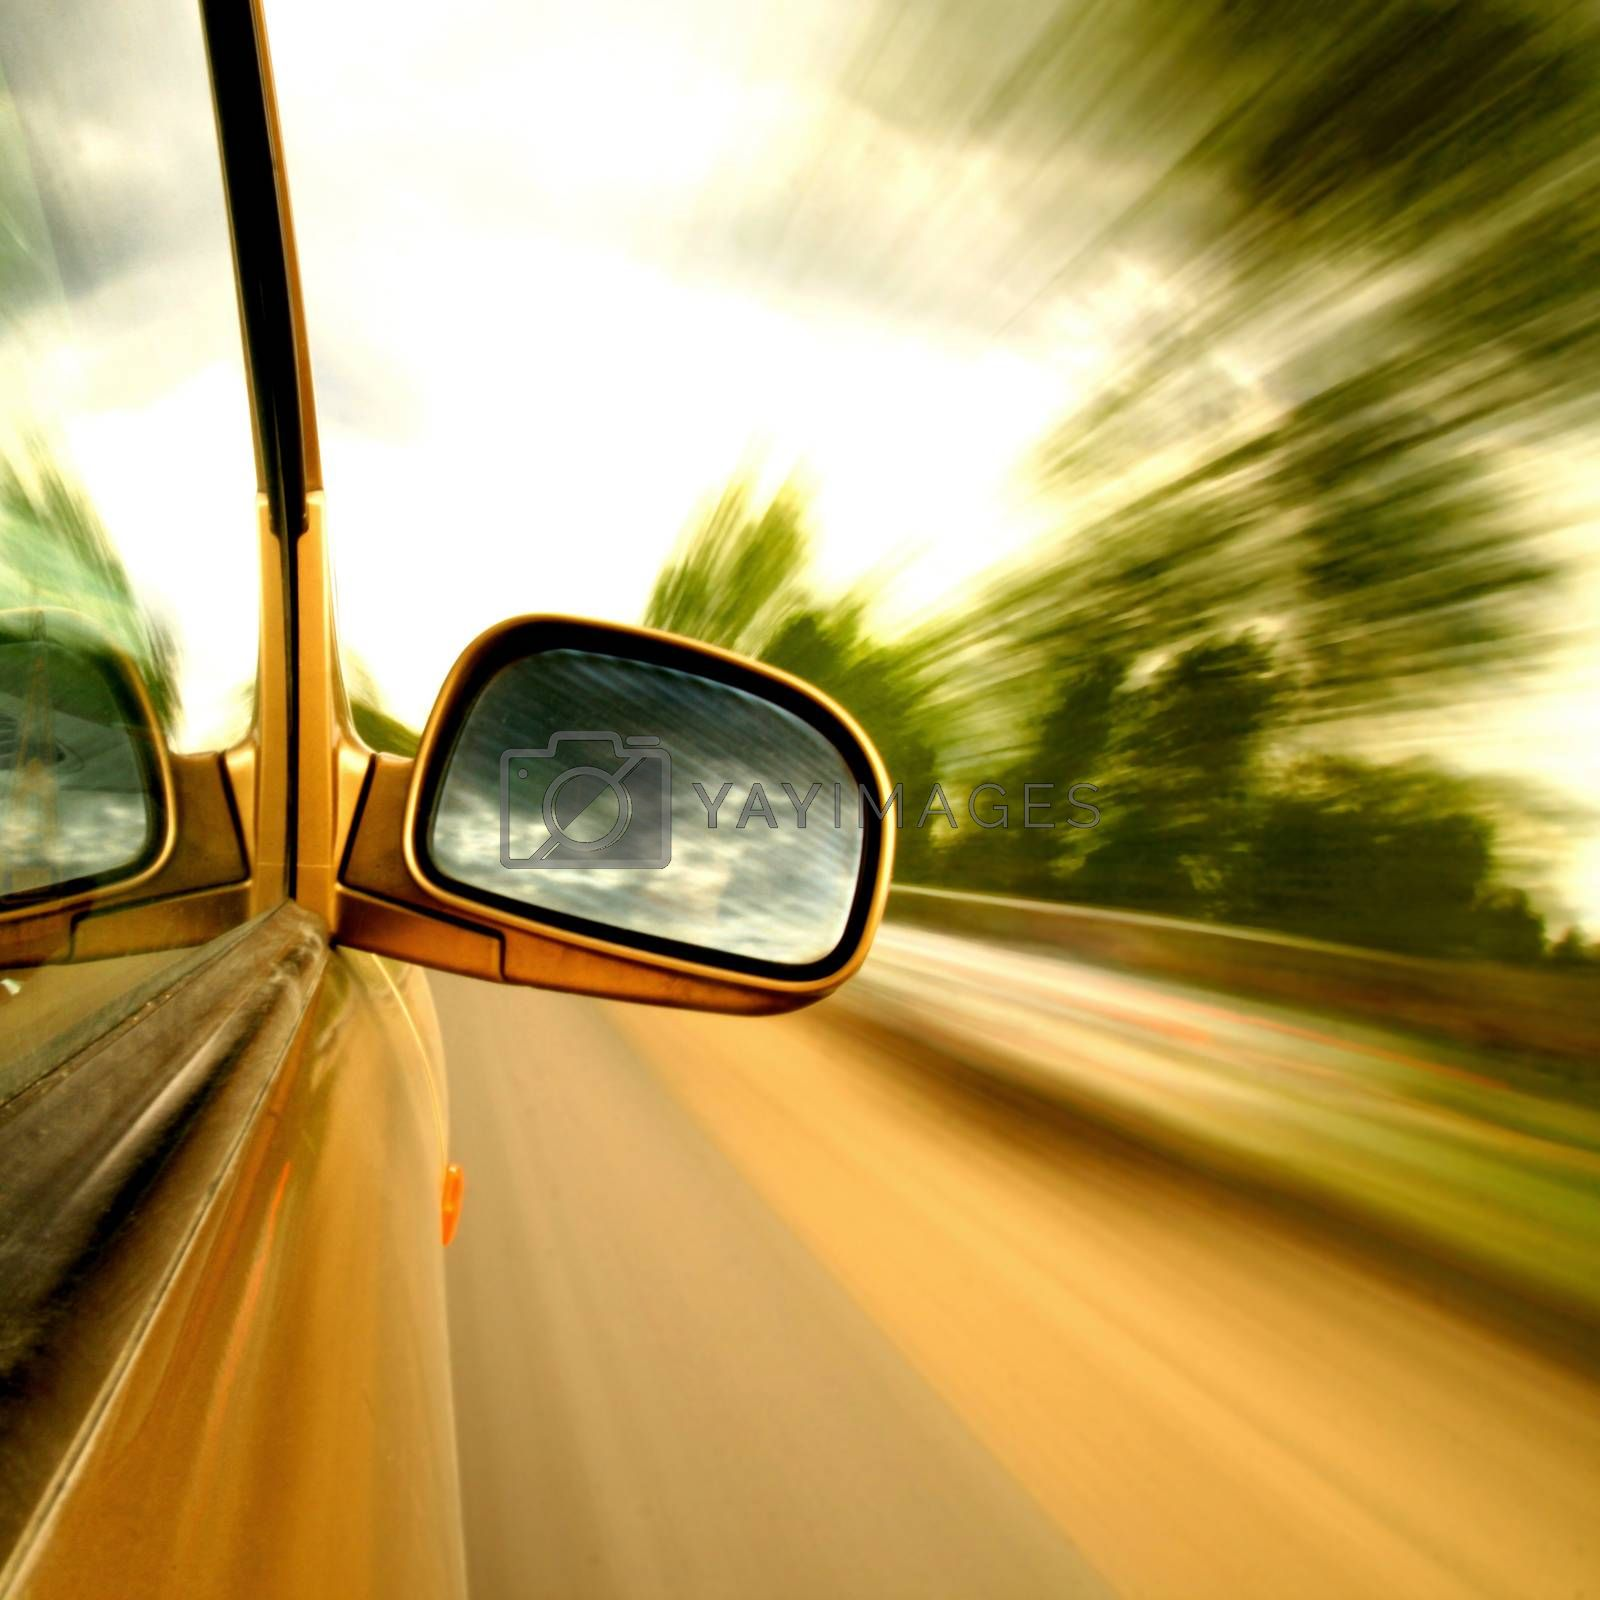 need for speed transportation background side car mirror view countryside